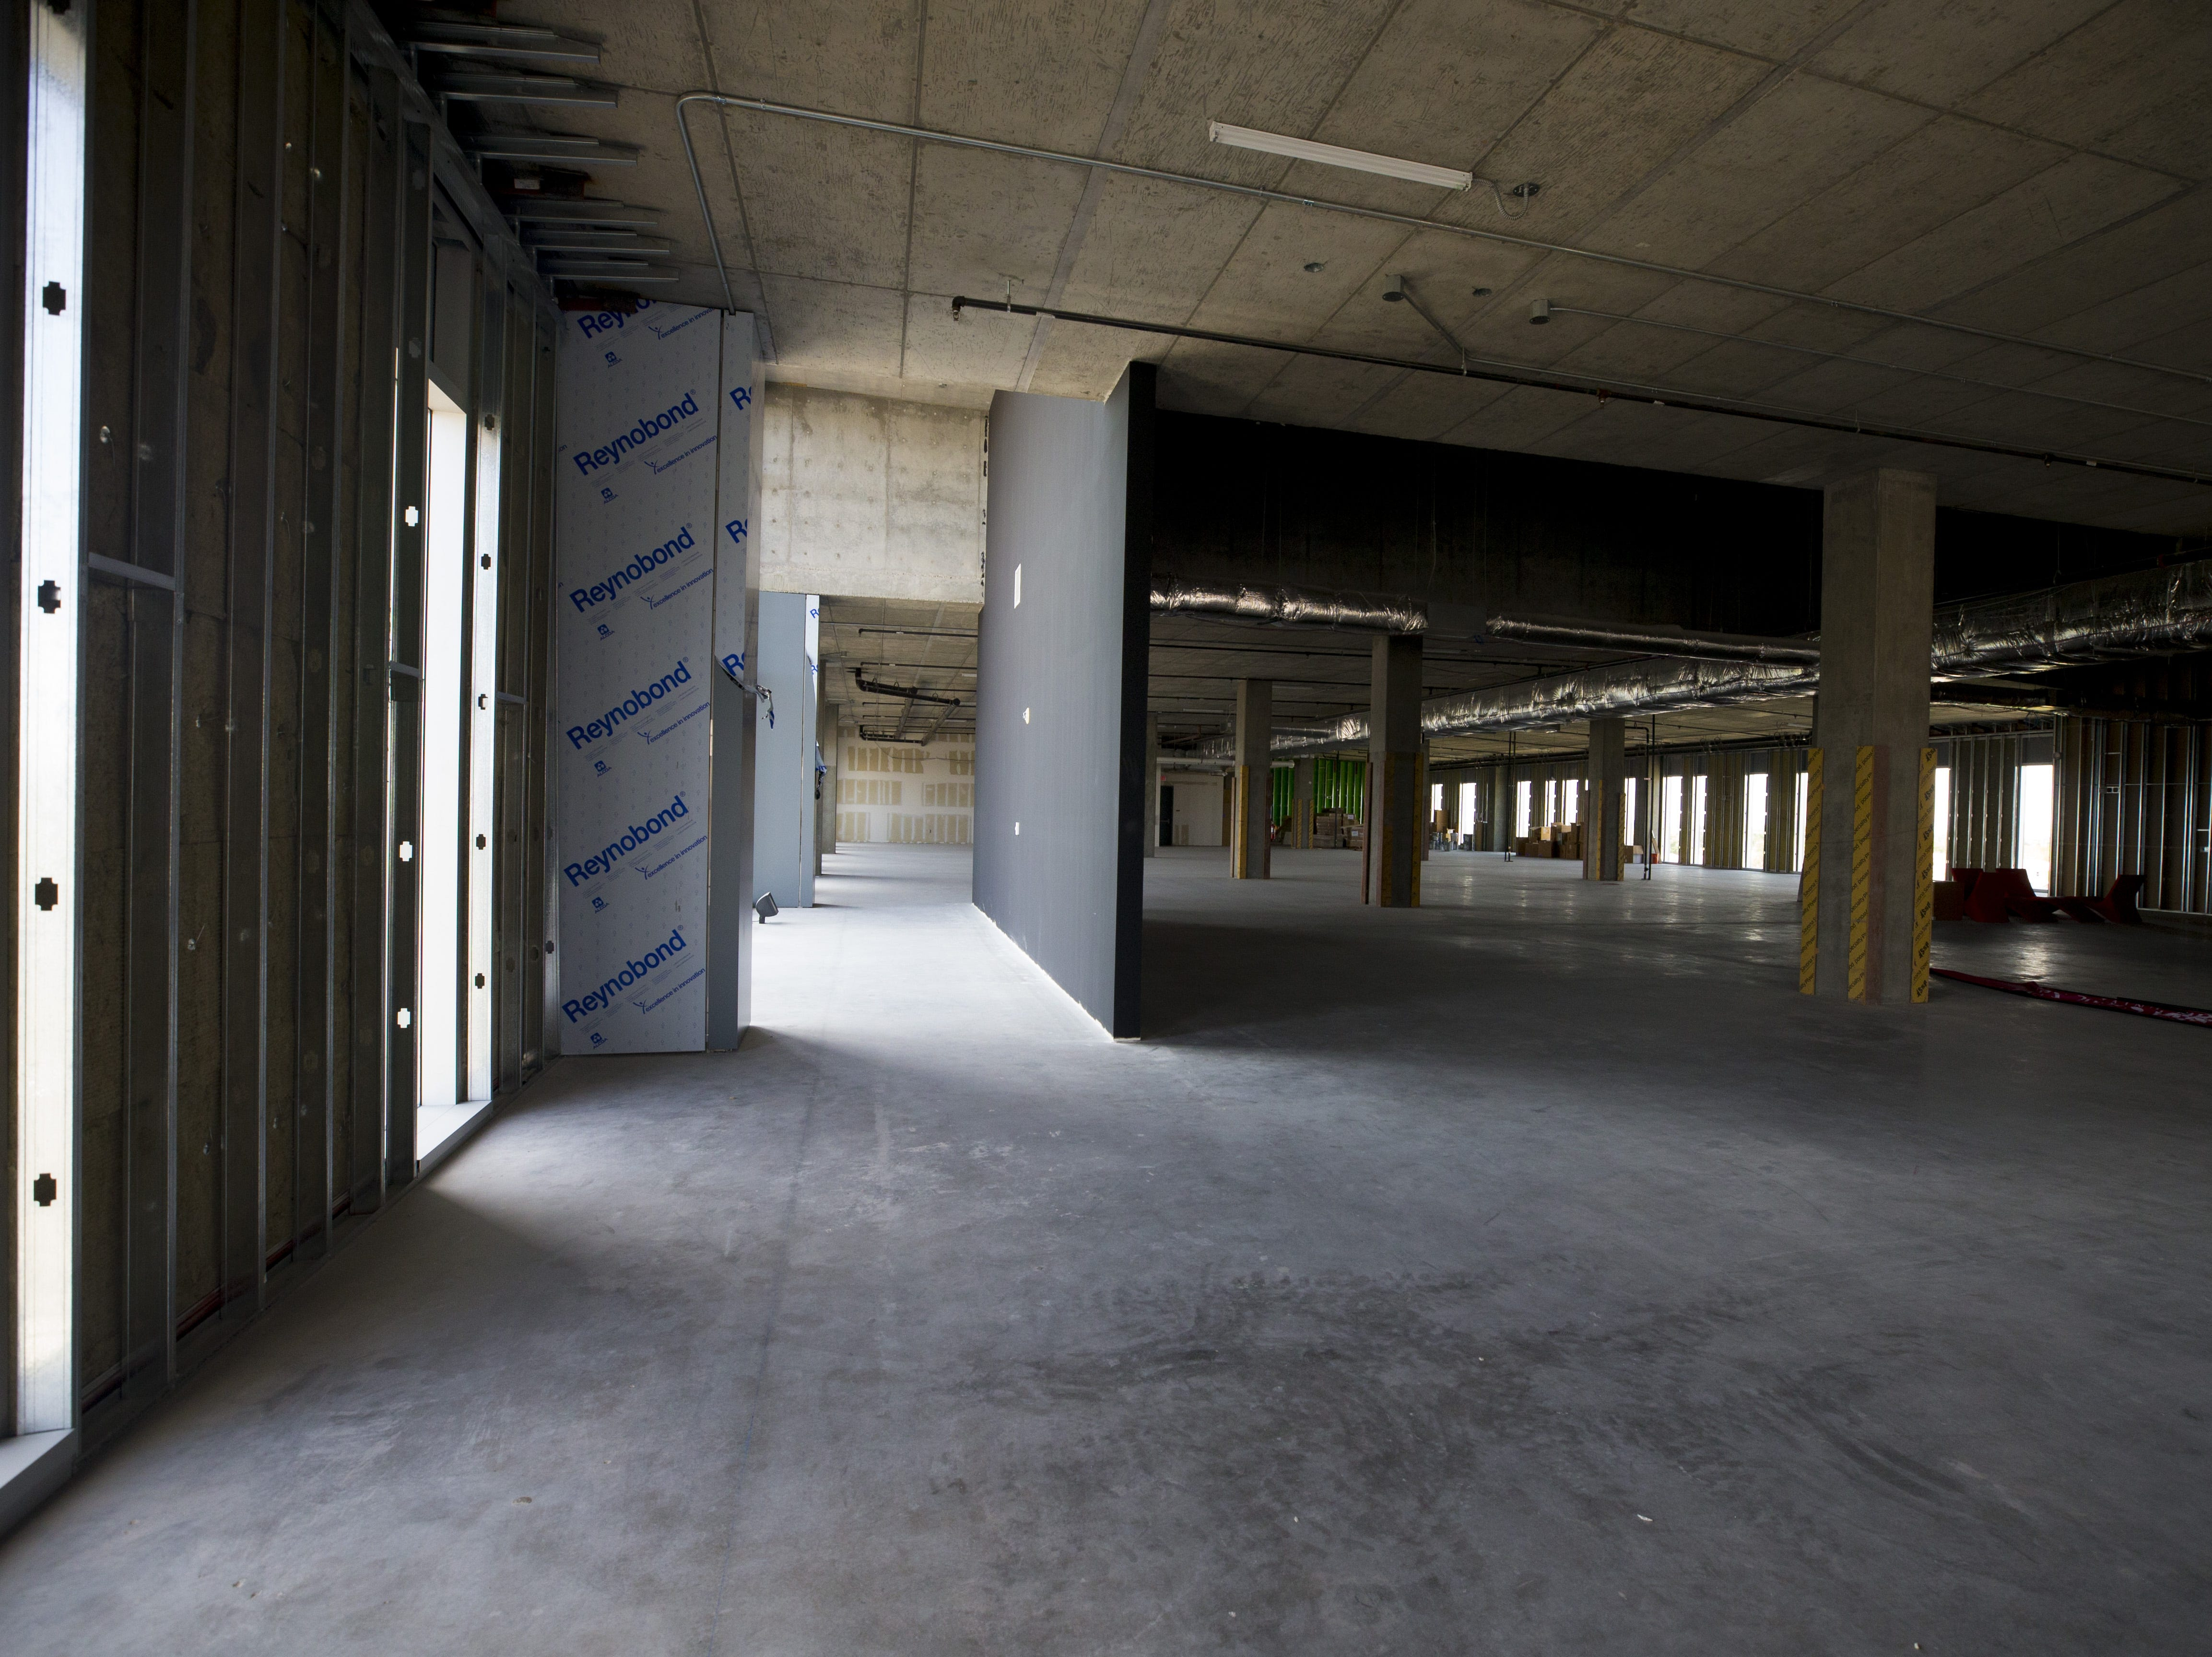 The fourth floor of the Gilbert University Building is unfinished. The City of Gilbert recently leased the first floor to Park University.